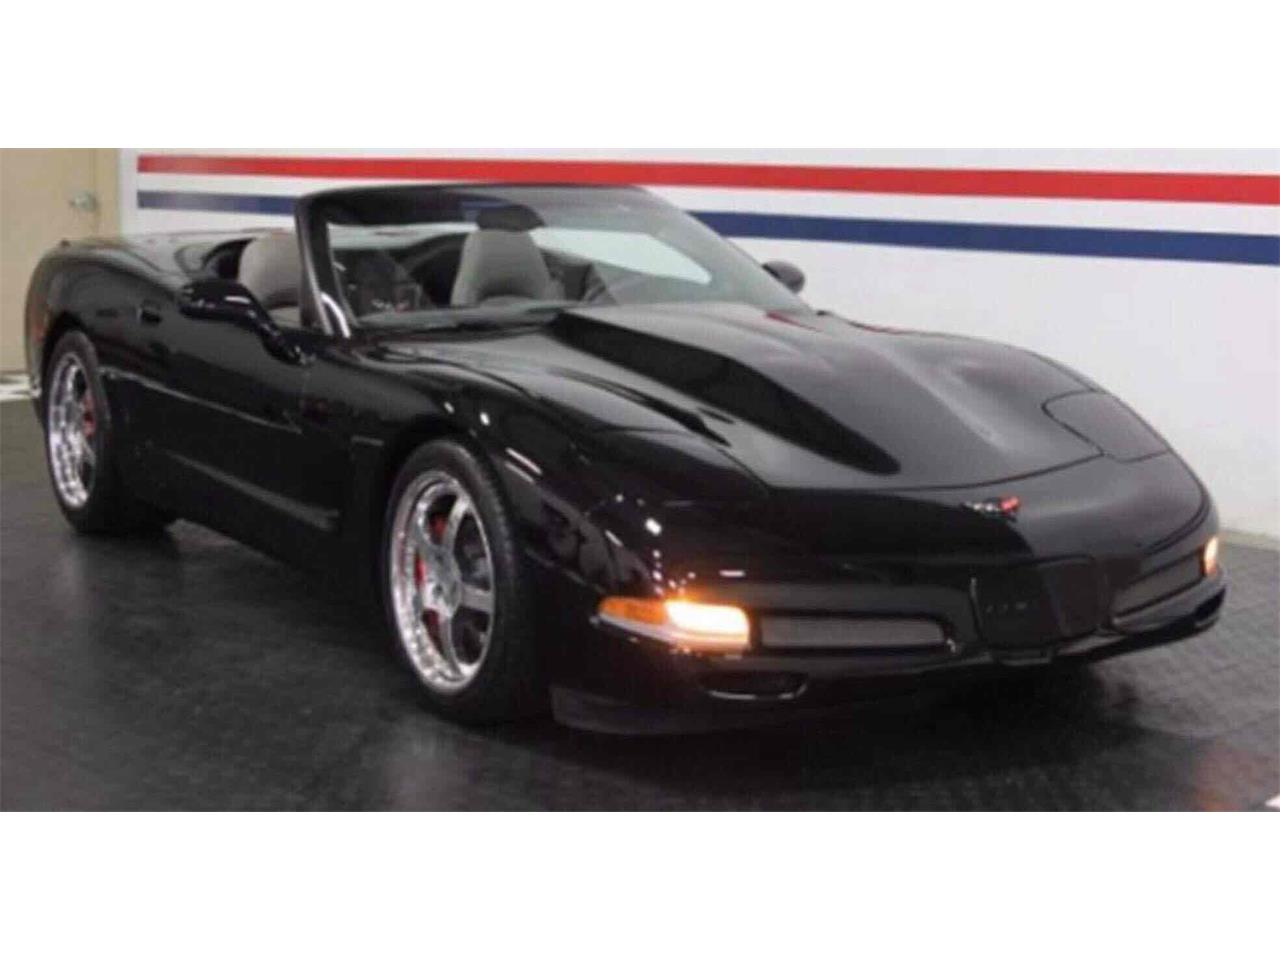 2004 Chevrolet Corvette (CC-1242697) for sale in Stanly County, North Carolina